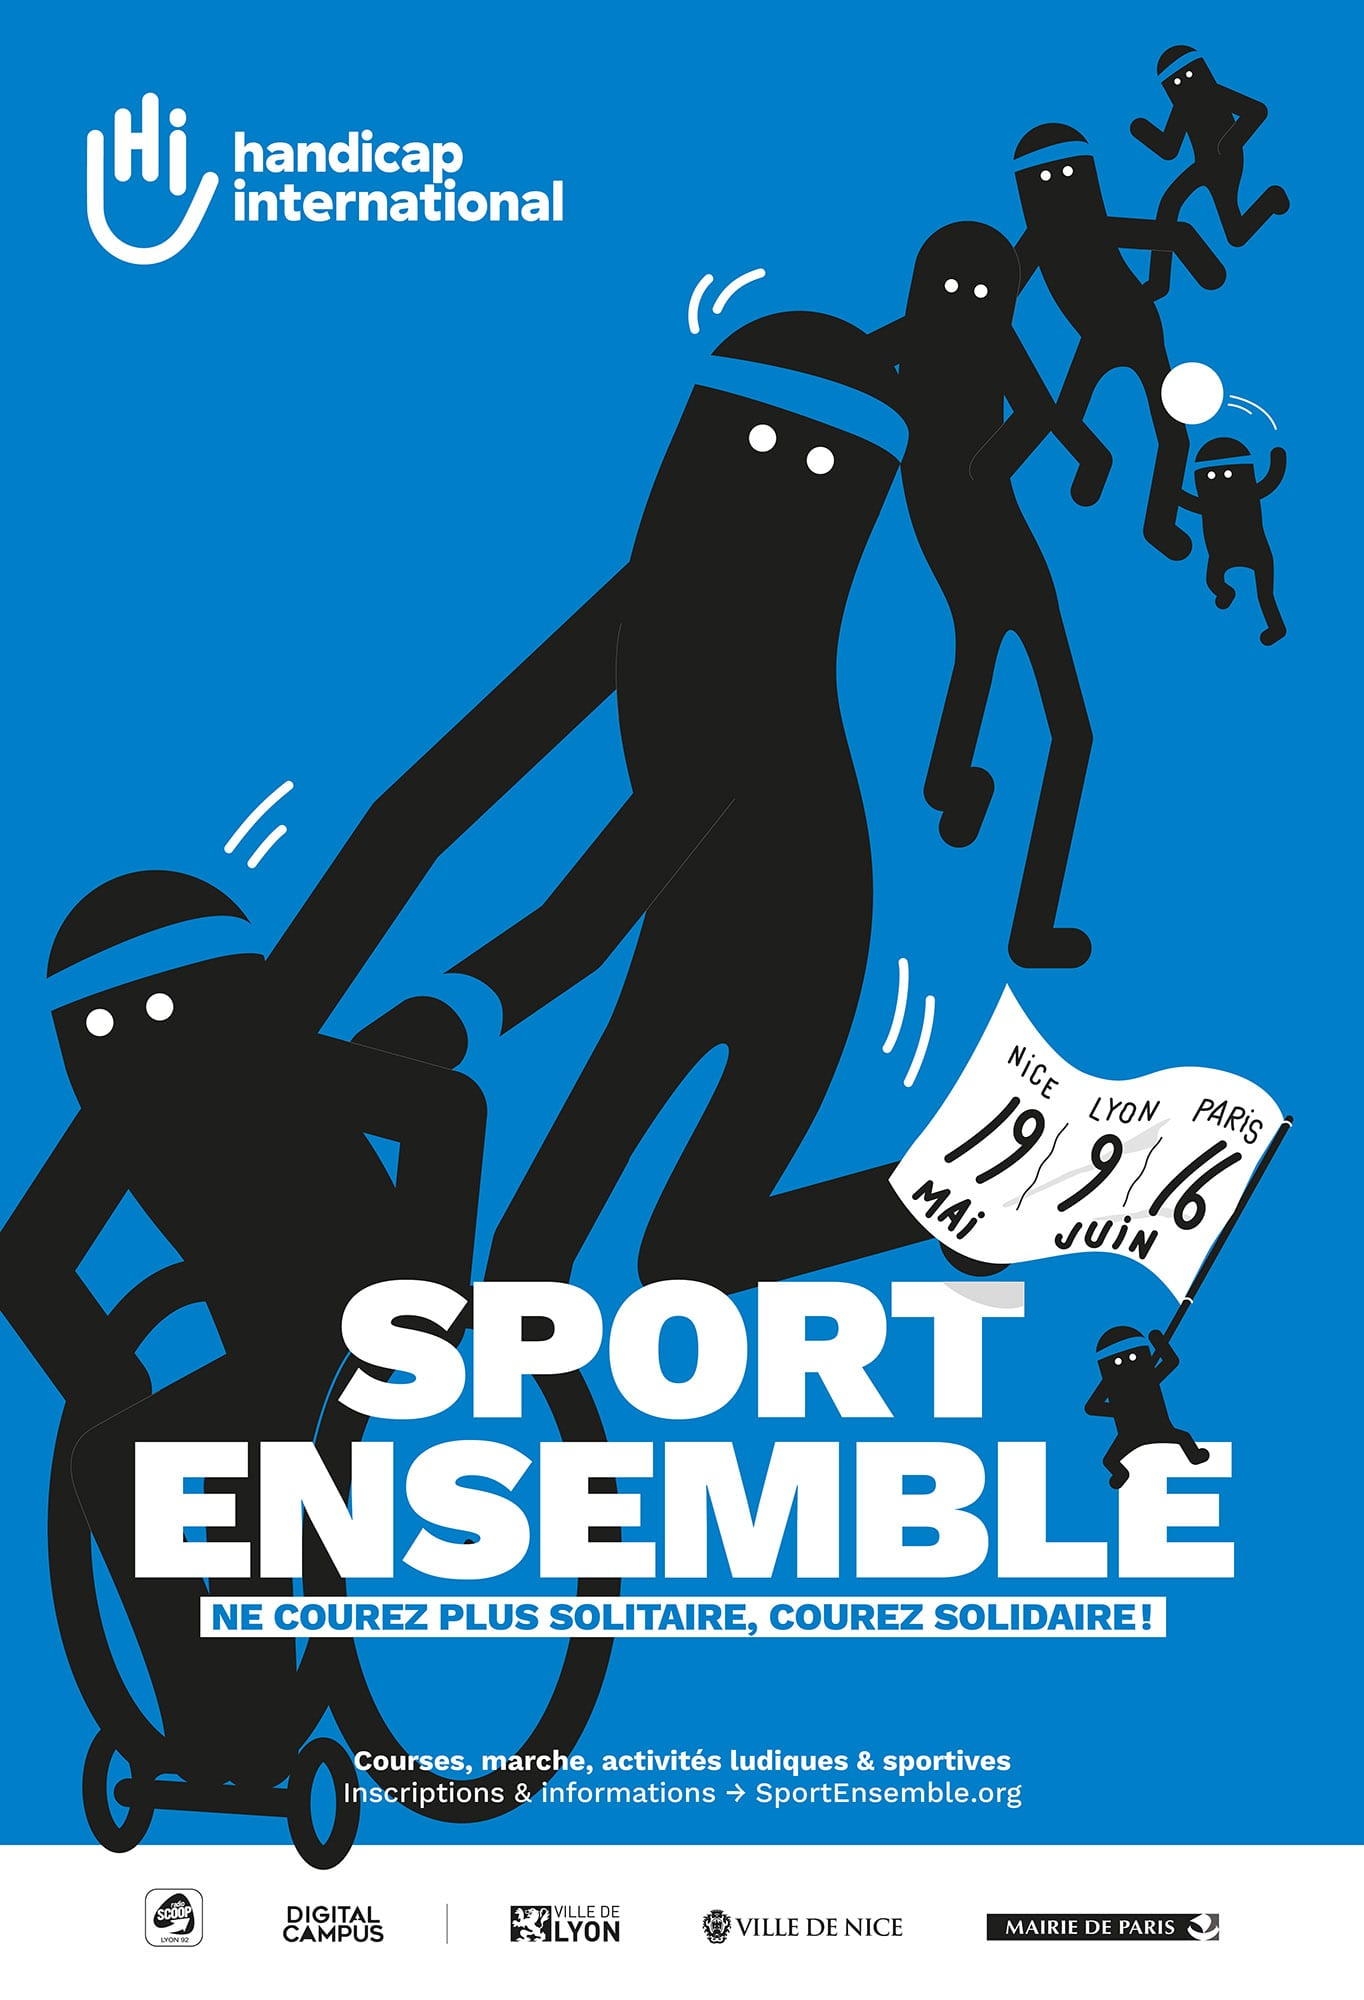 sport ensemble handicap international